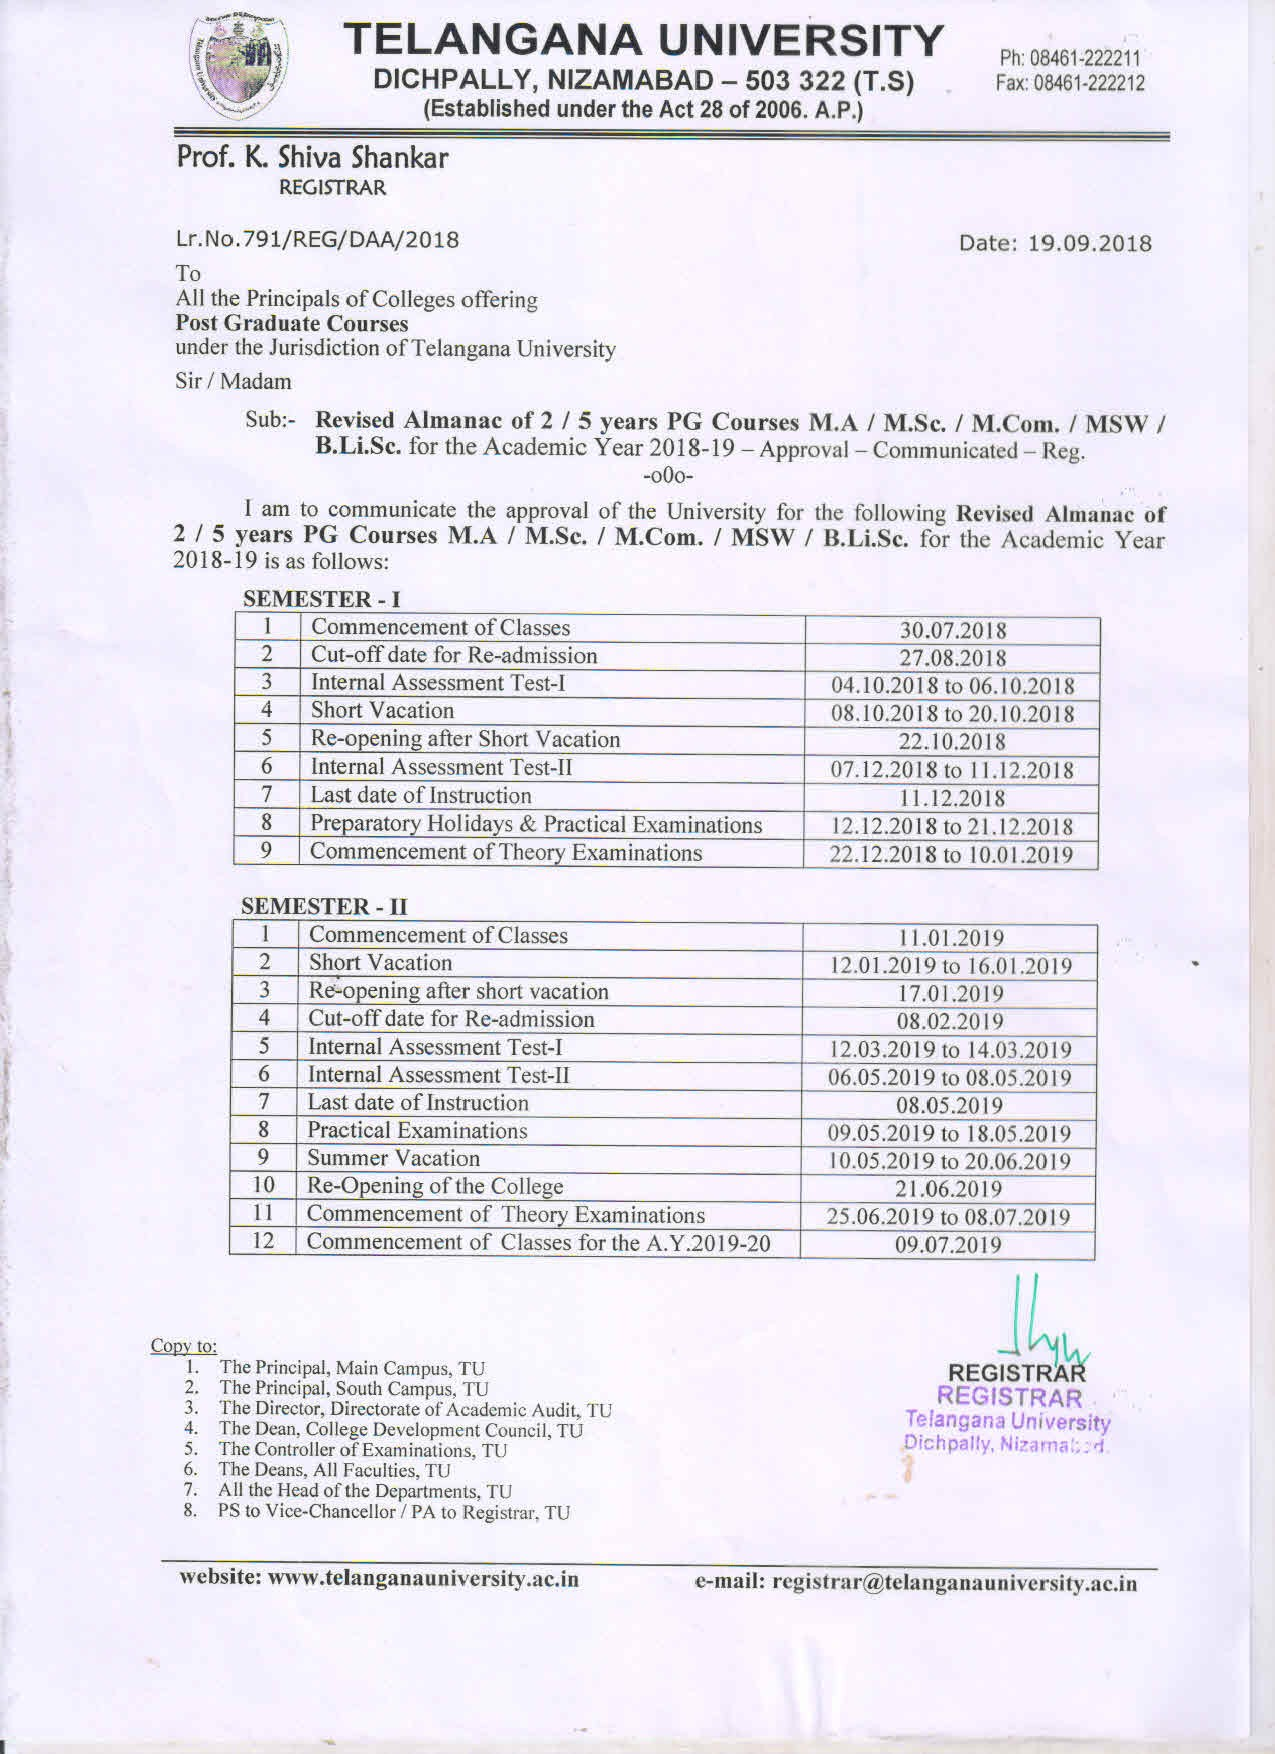 Revised Almanac of II V yr PG Courses M A M Sc M MSW I & II Sem for the A Y 2018 19